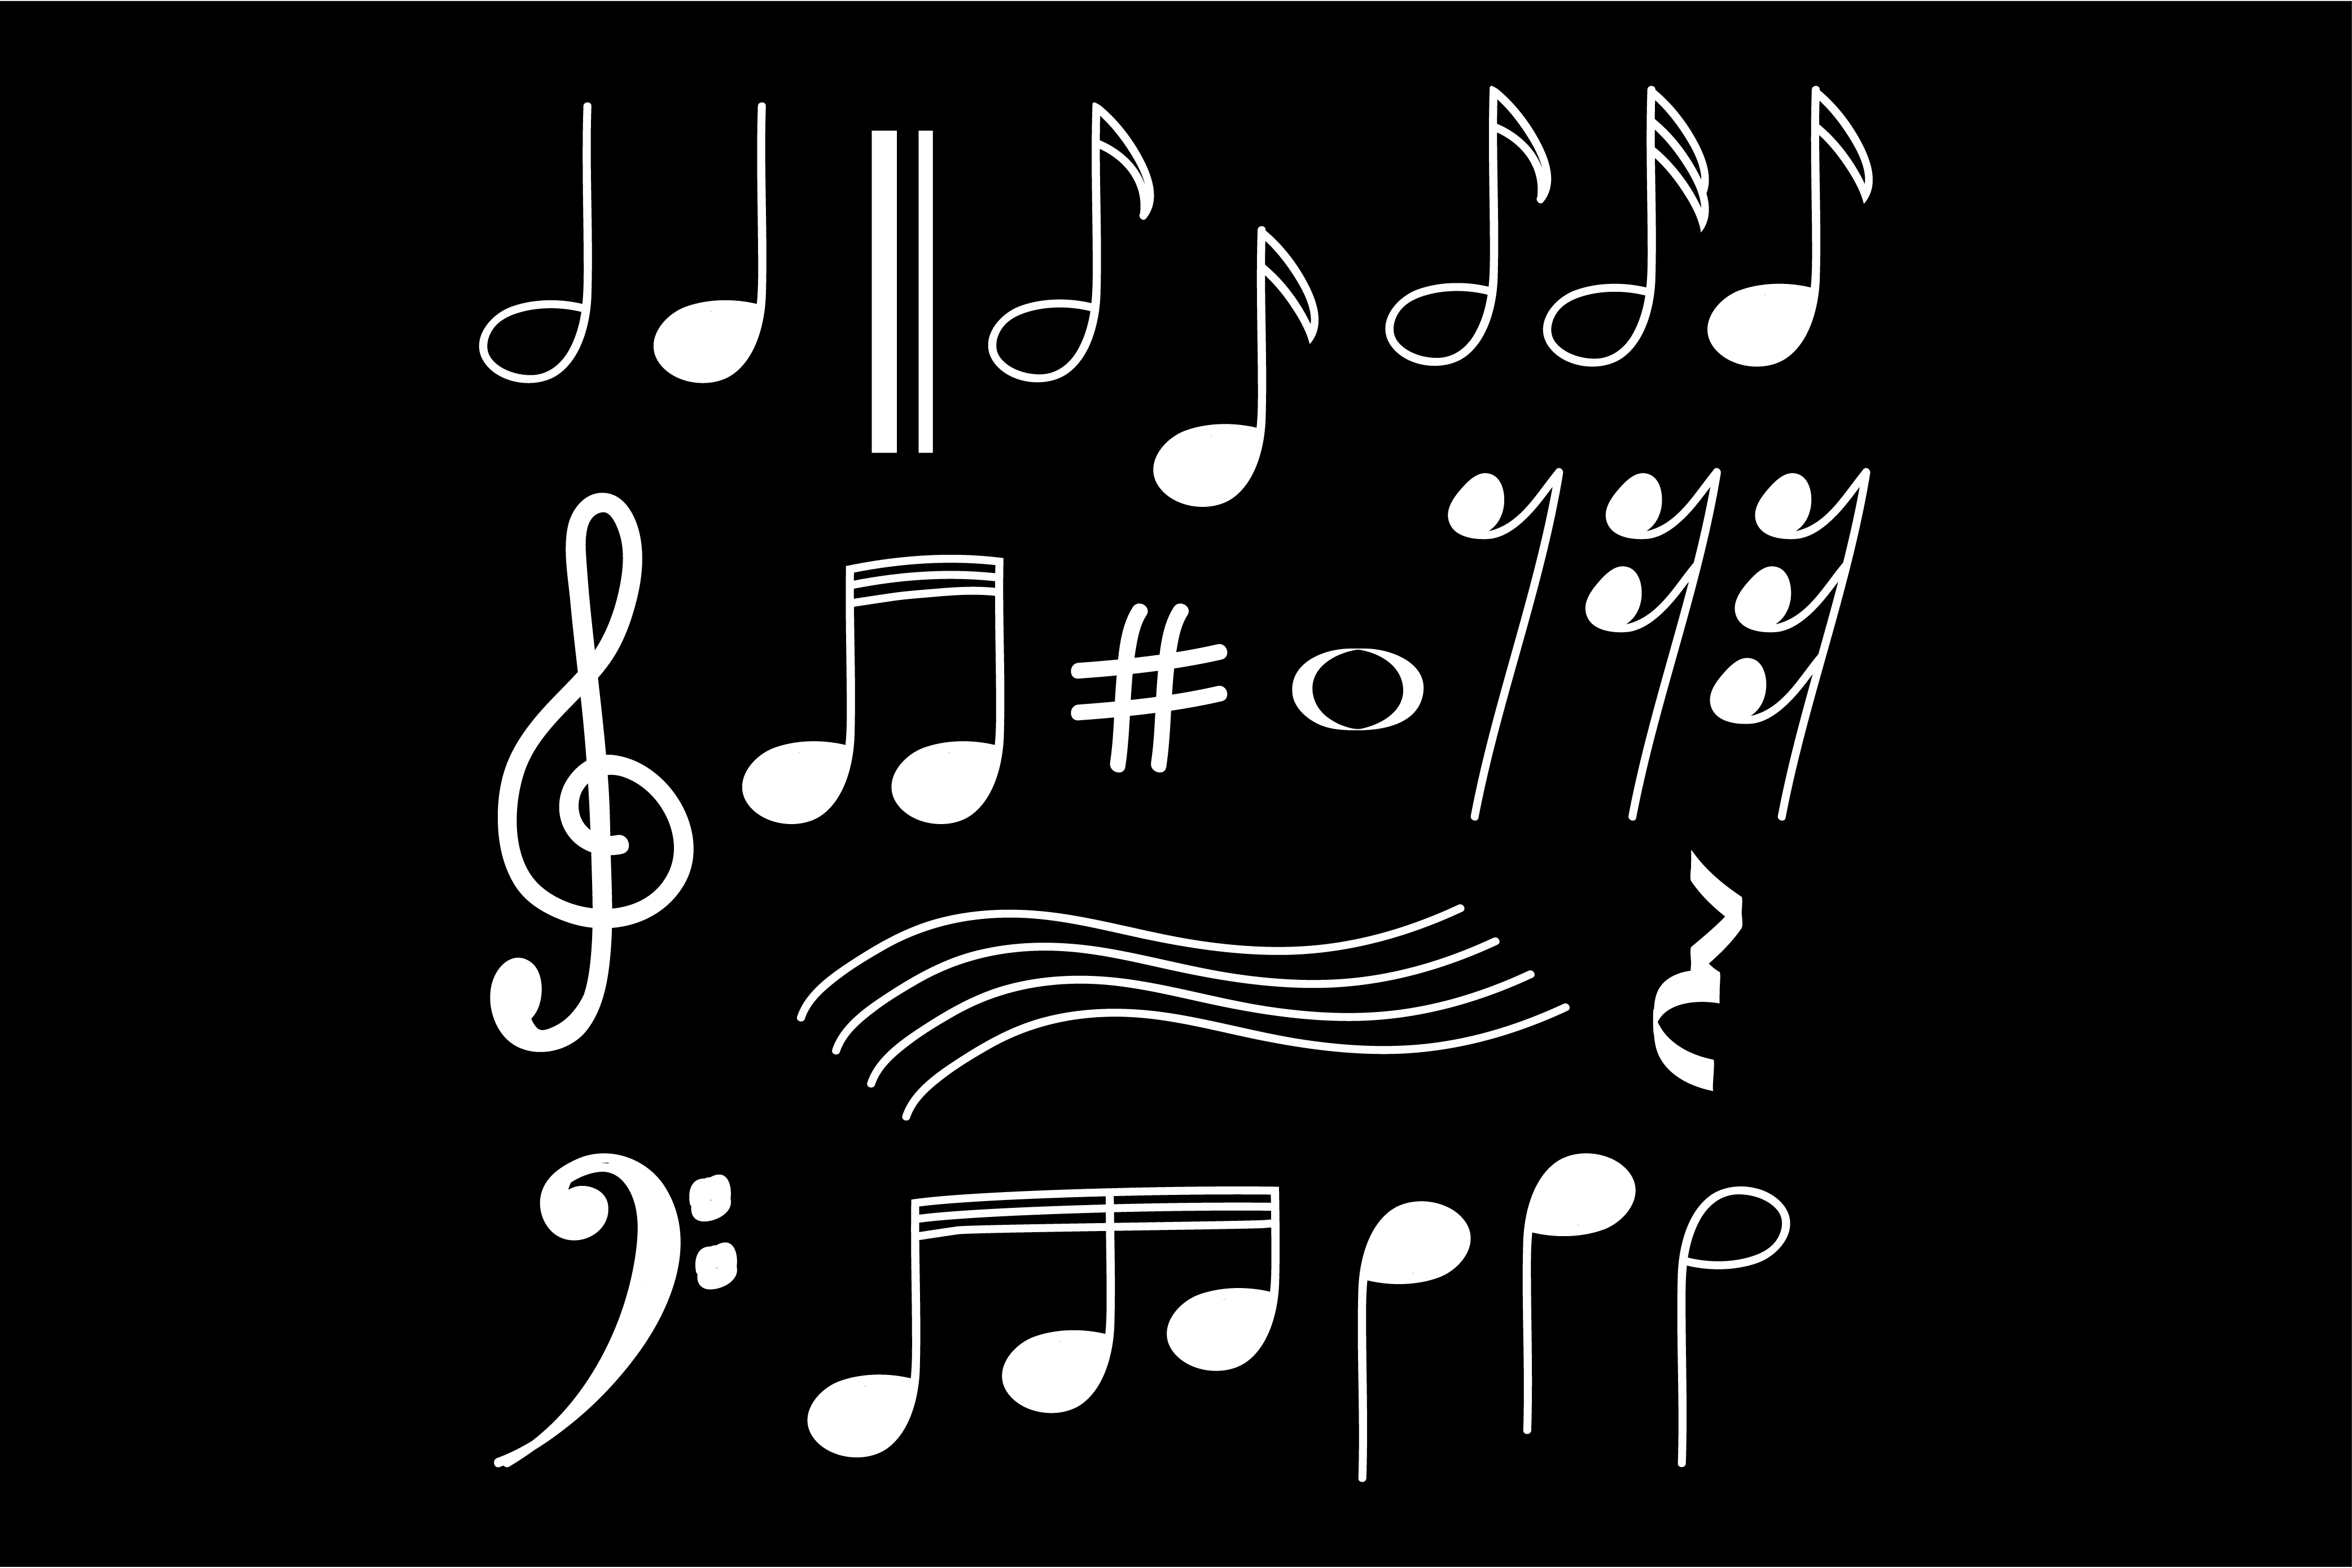 Download Free Music Note Doodles Graphic By Sabavector Creative Fabrica for Cricut Explore, Silhouette and other cutting machines.